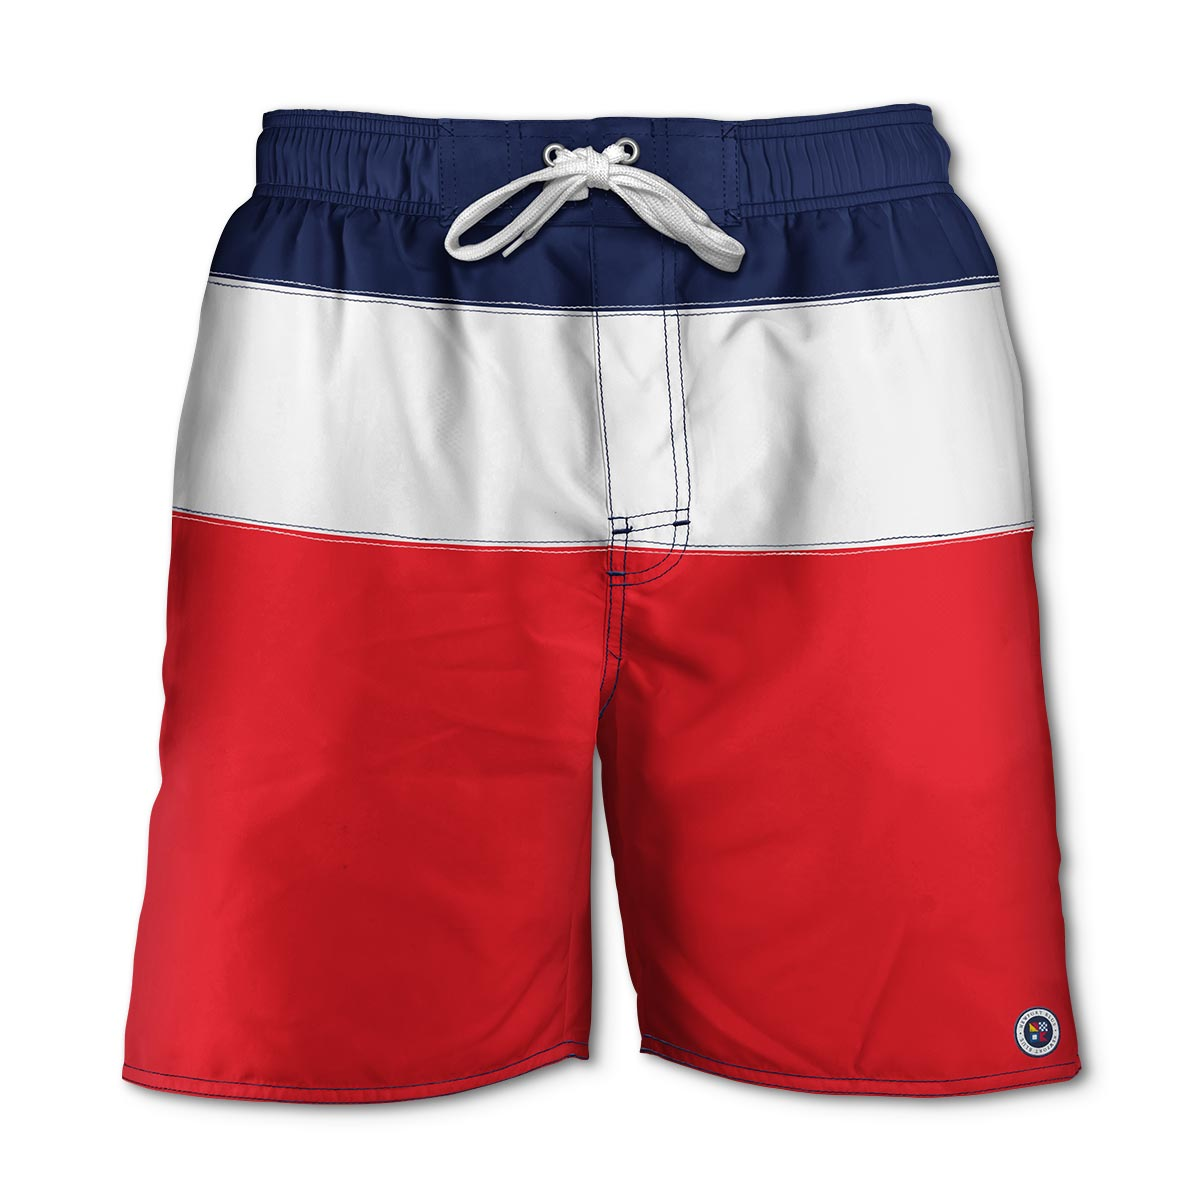 Newport Blue - Swim Shorts | Trifecta - Red/White/Navy